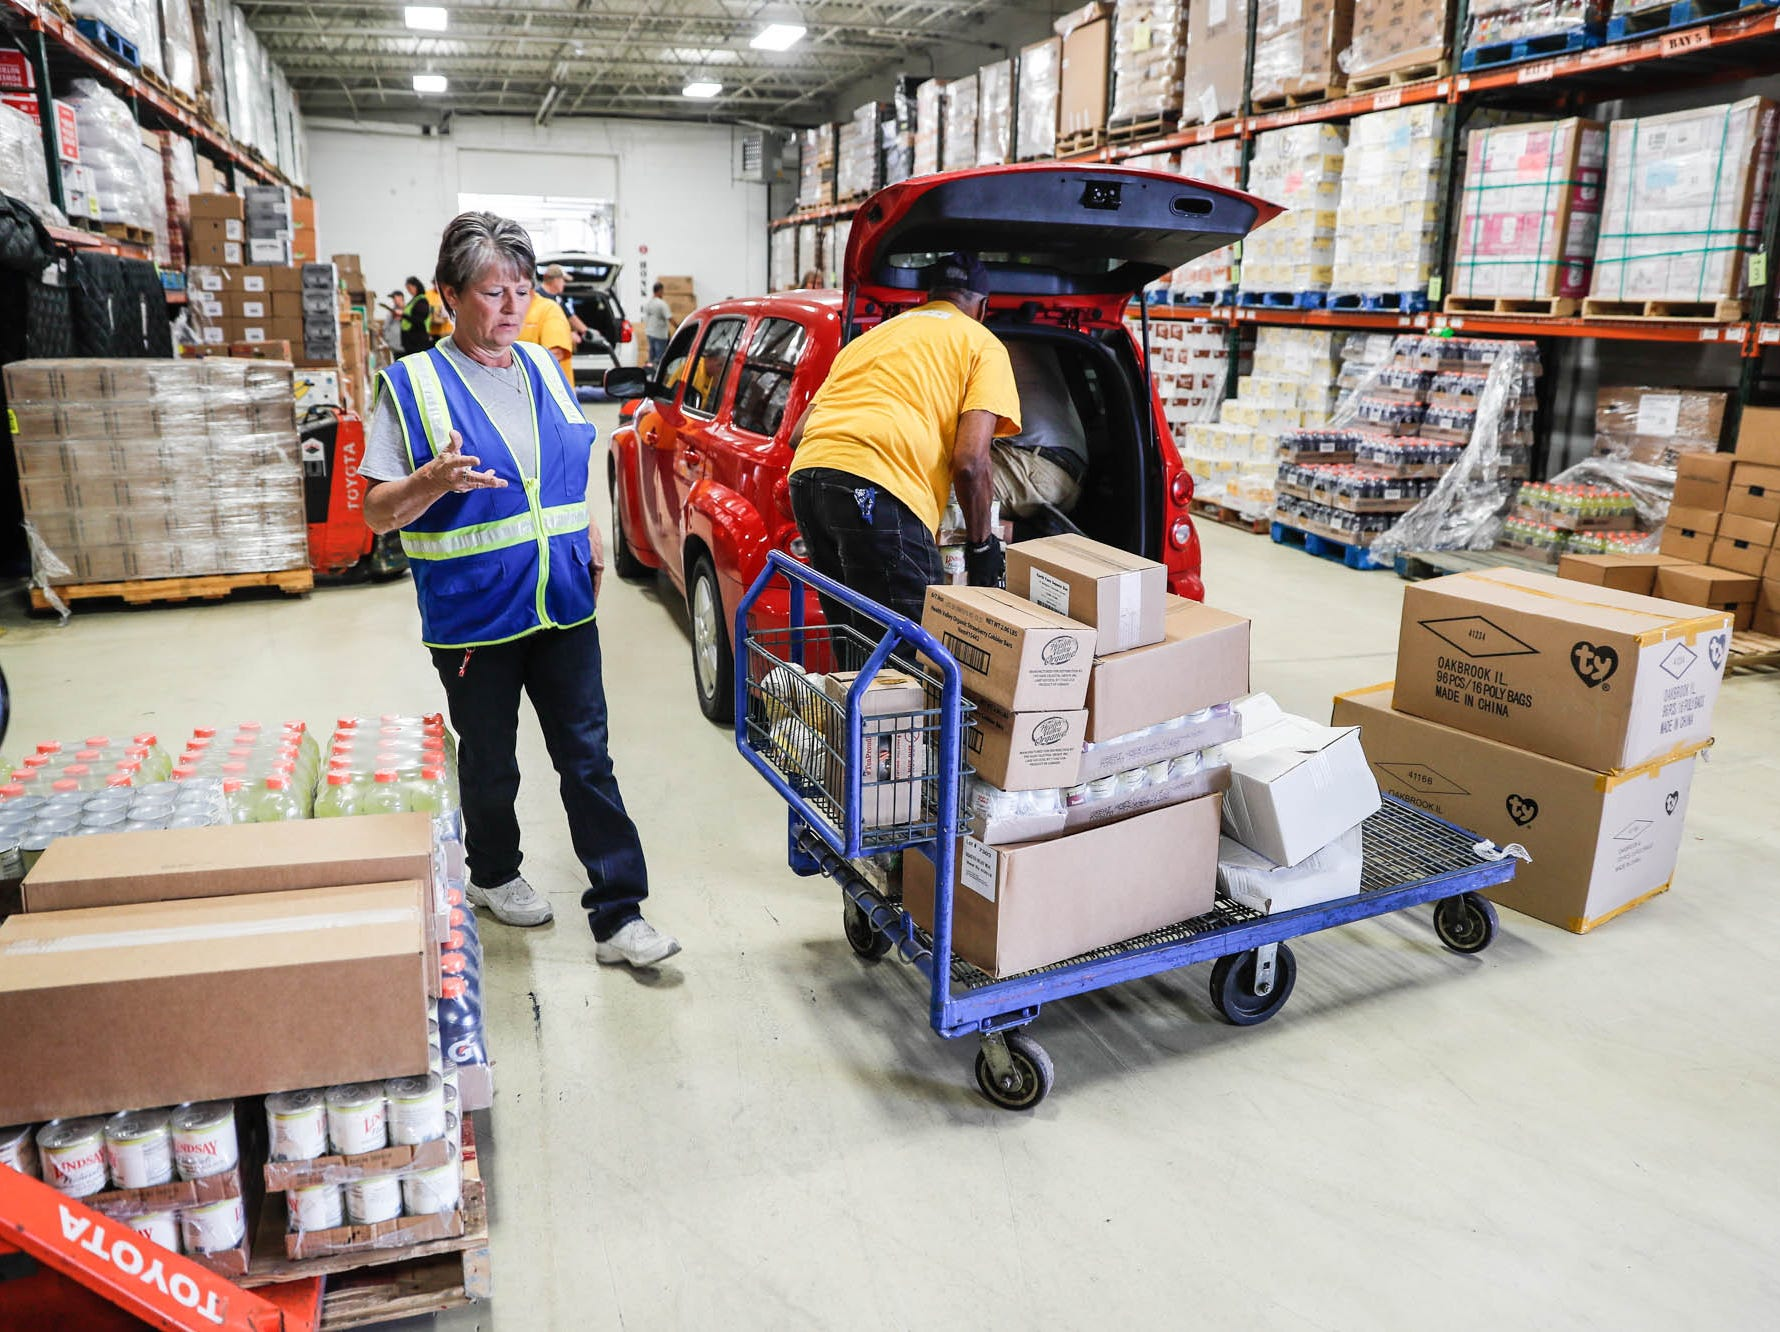 Midwest Food Bank volunteers unload food stuffs after a press conference announcing the expansion of the Food Drop program, which partnered with Indiana's largest hunger relief agencies to make it easier for truck drivers to donate store-rejected food on Tuesday, Oct. 23, 2018.